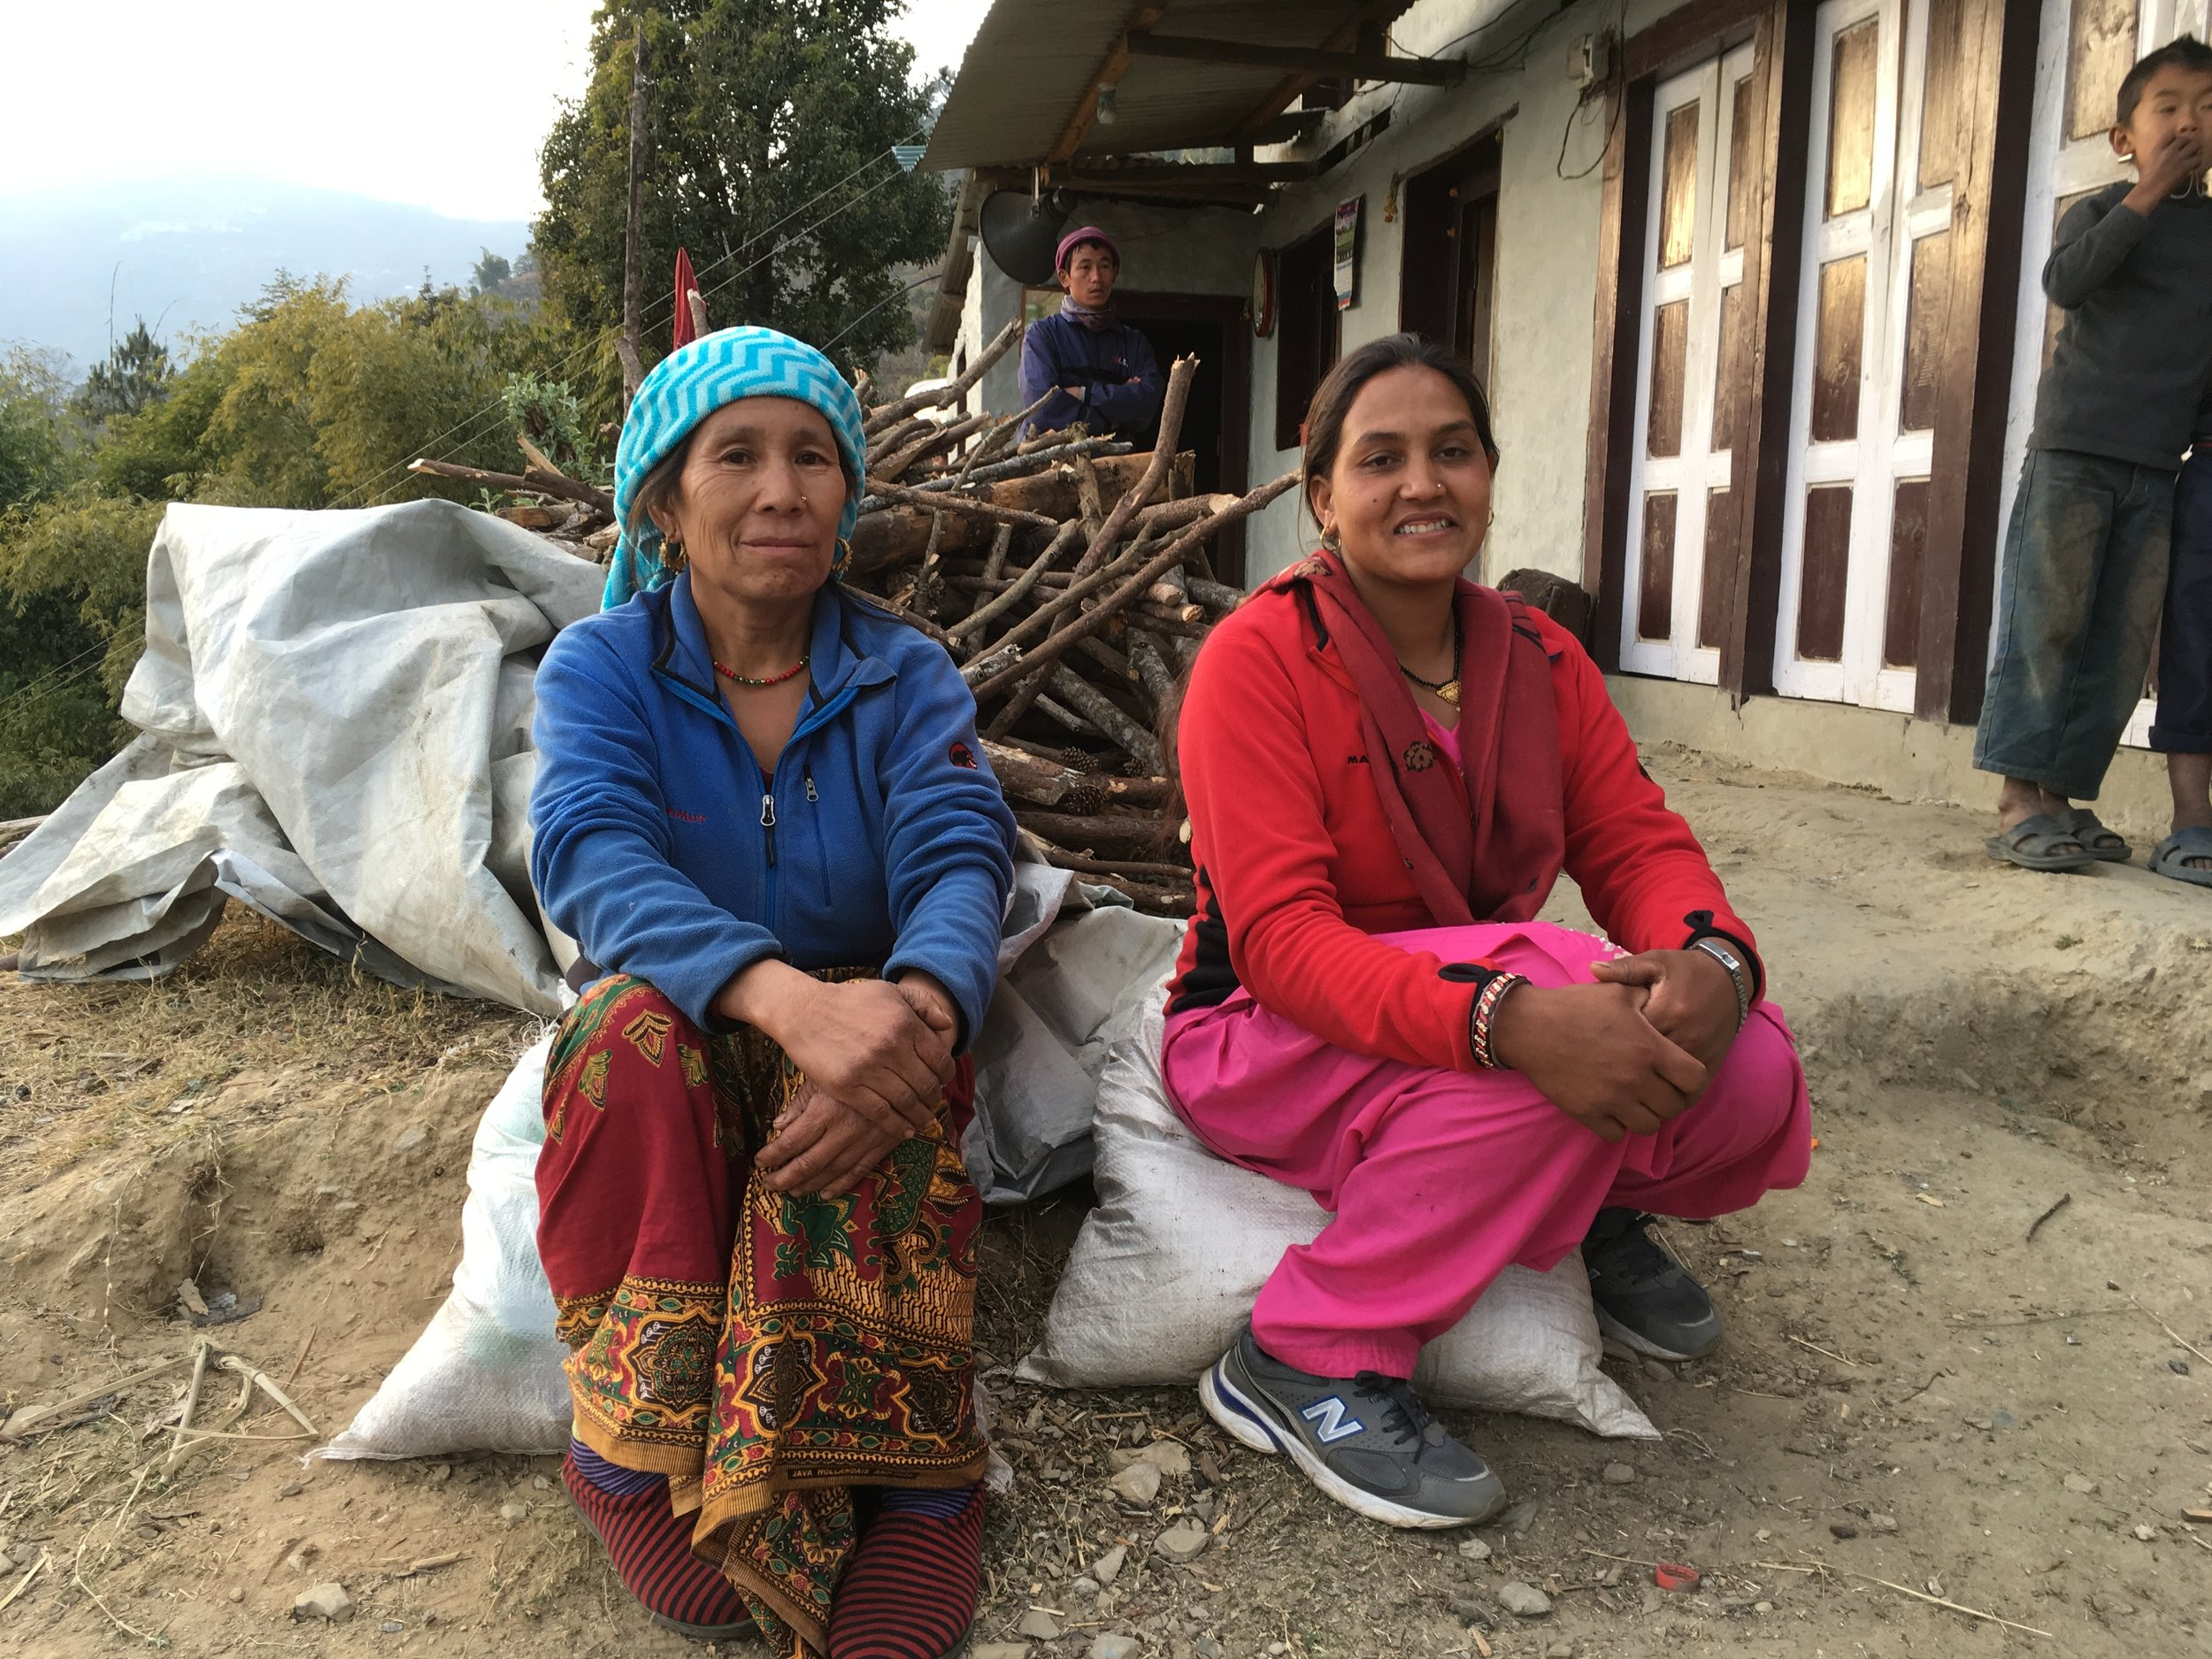 Syana Maya Rai and Kamala Rai in Deusa. Training at the TGT funded AFRC has enabled Syana and Kamala to introduce new crops on their farm.